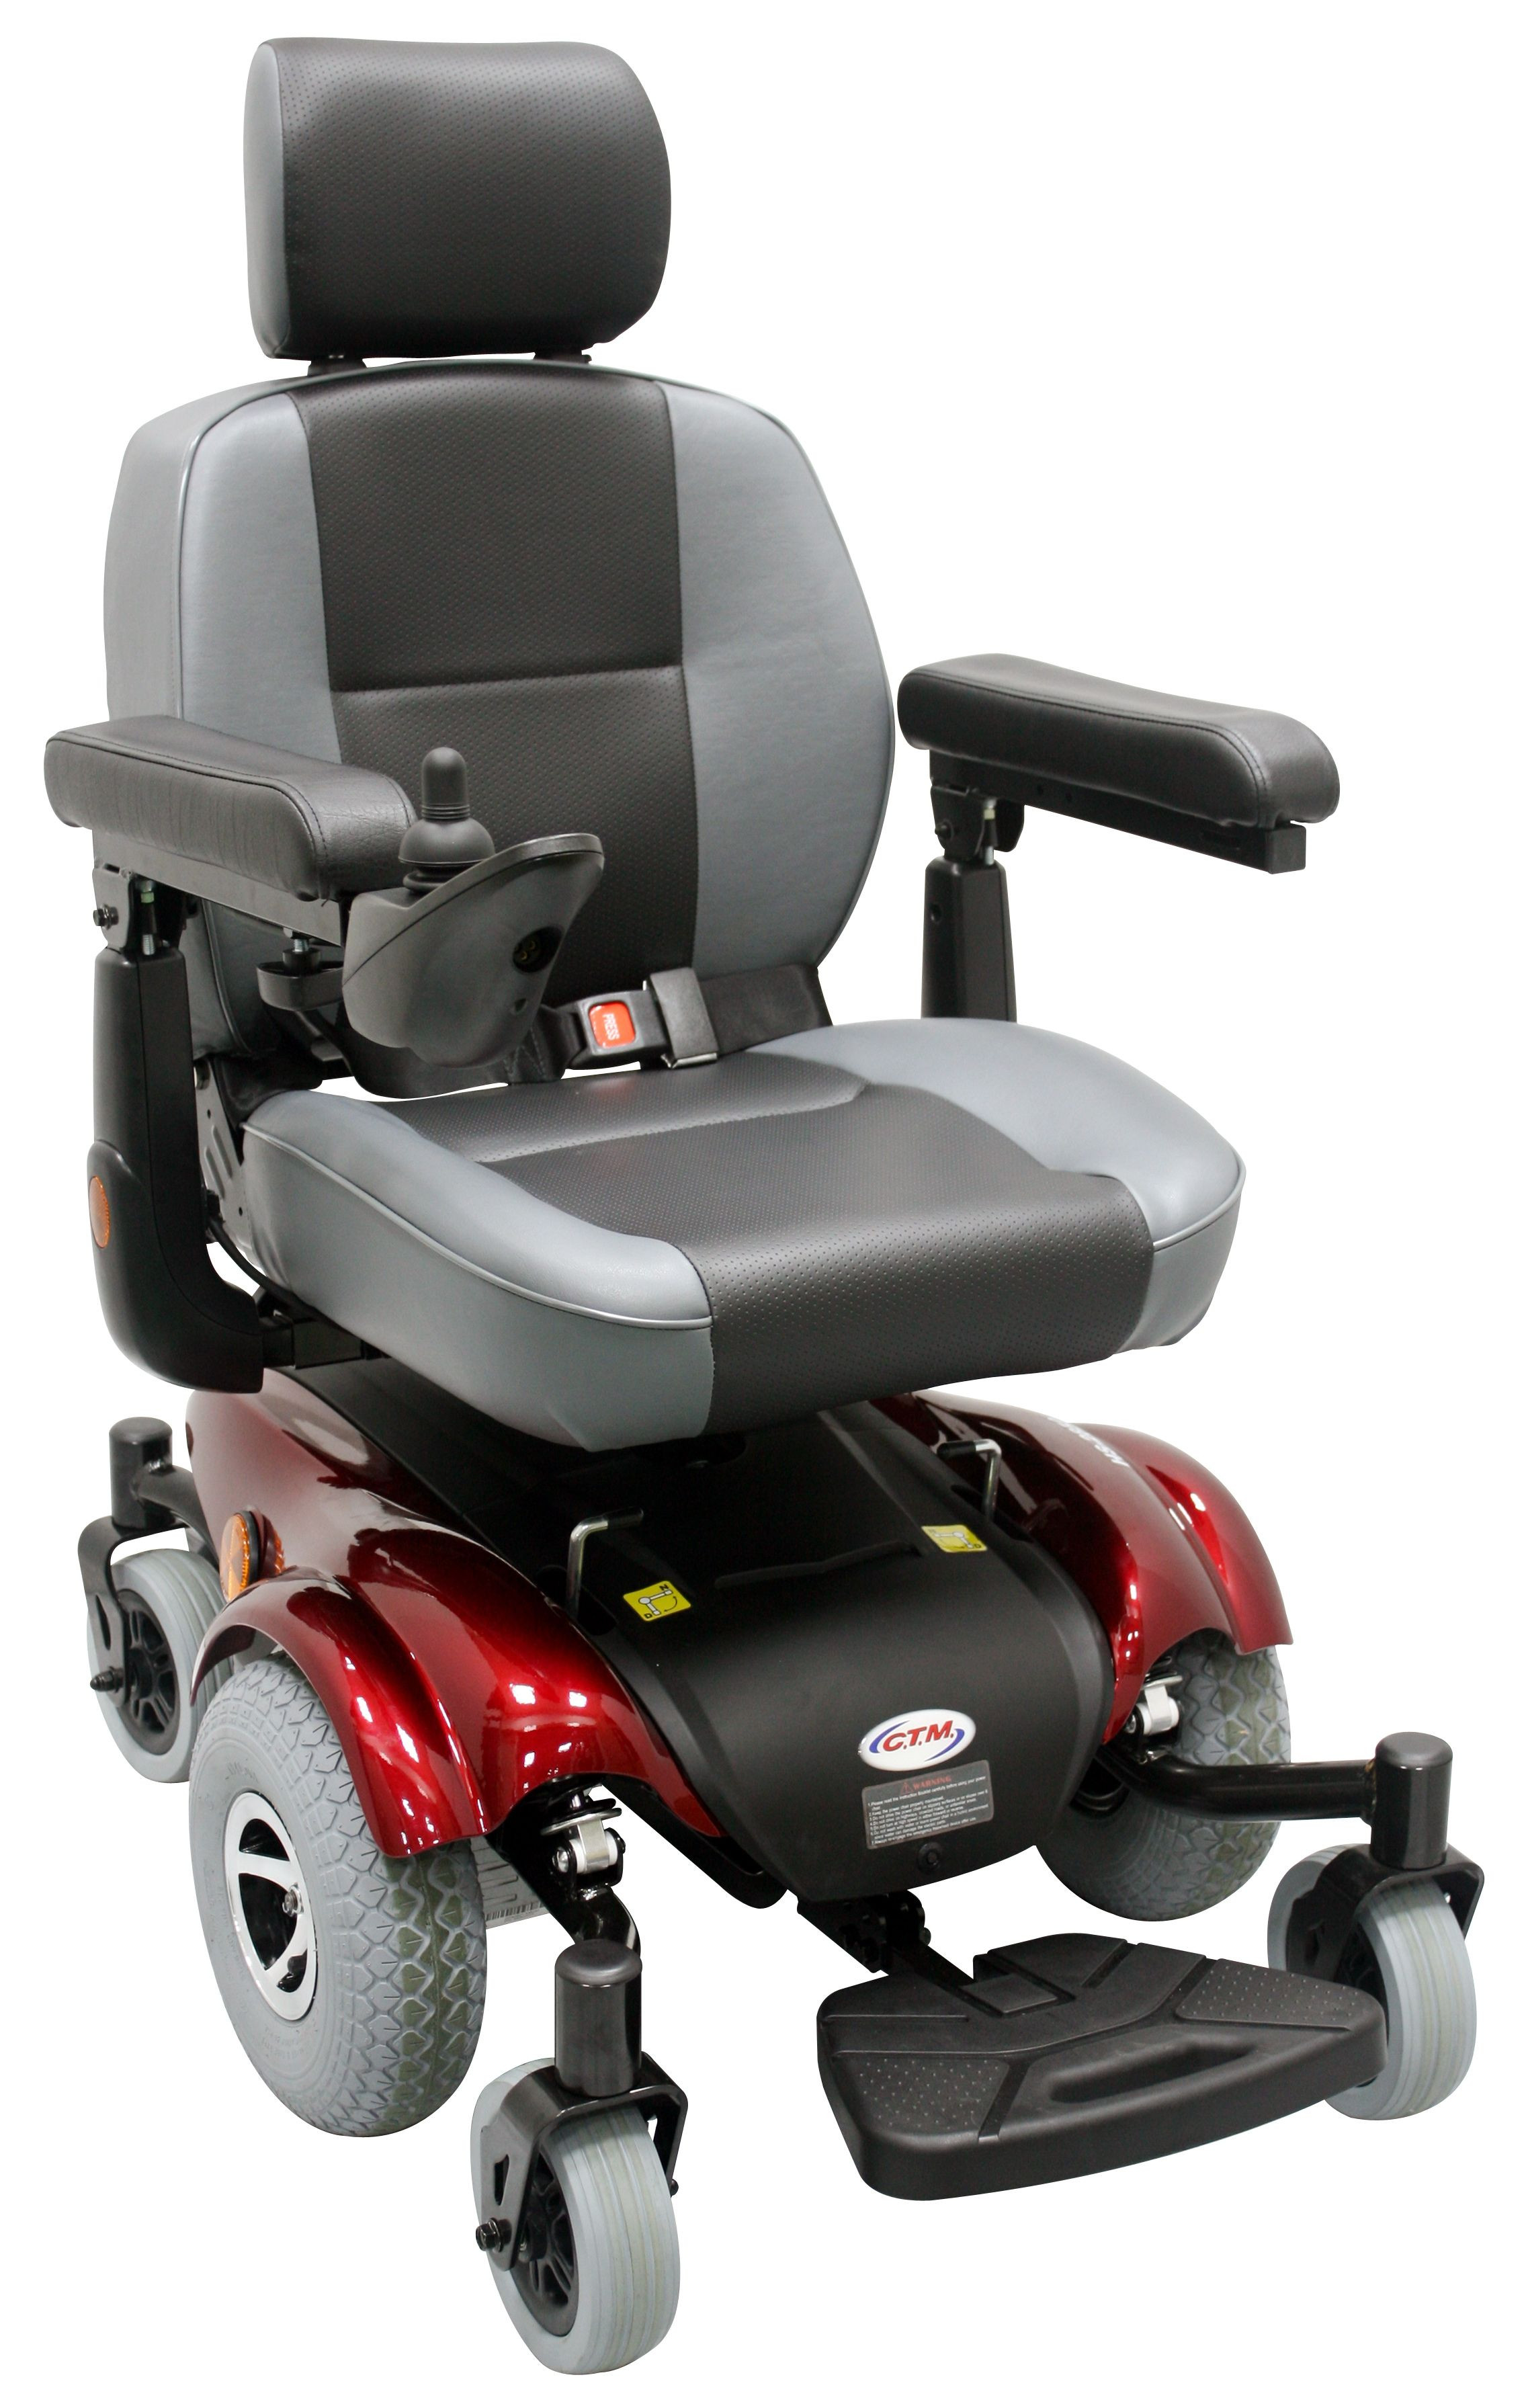 Power Chair Repair Ctm Hs 2850 Power Wheelchair For Sale Lowest Prices Tax